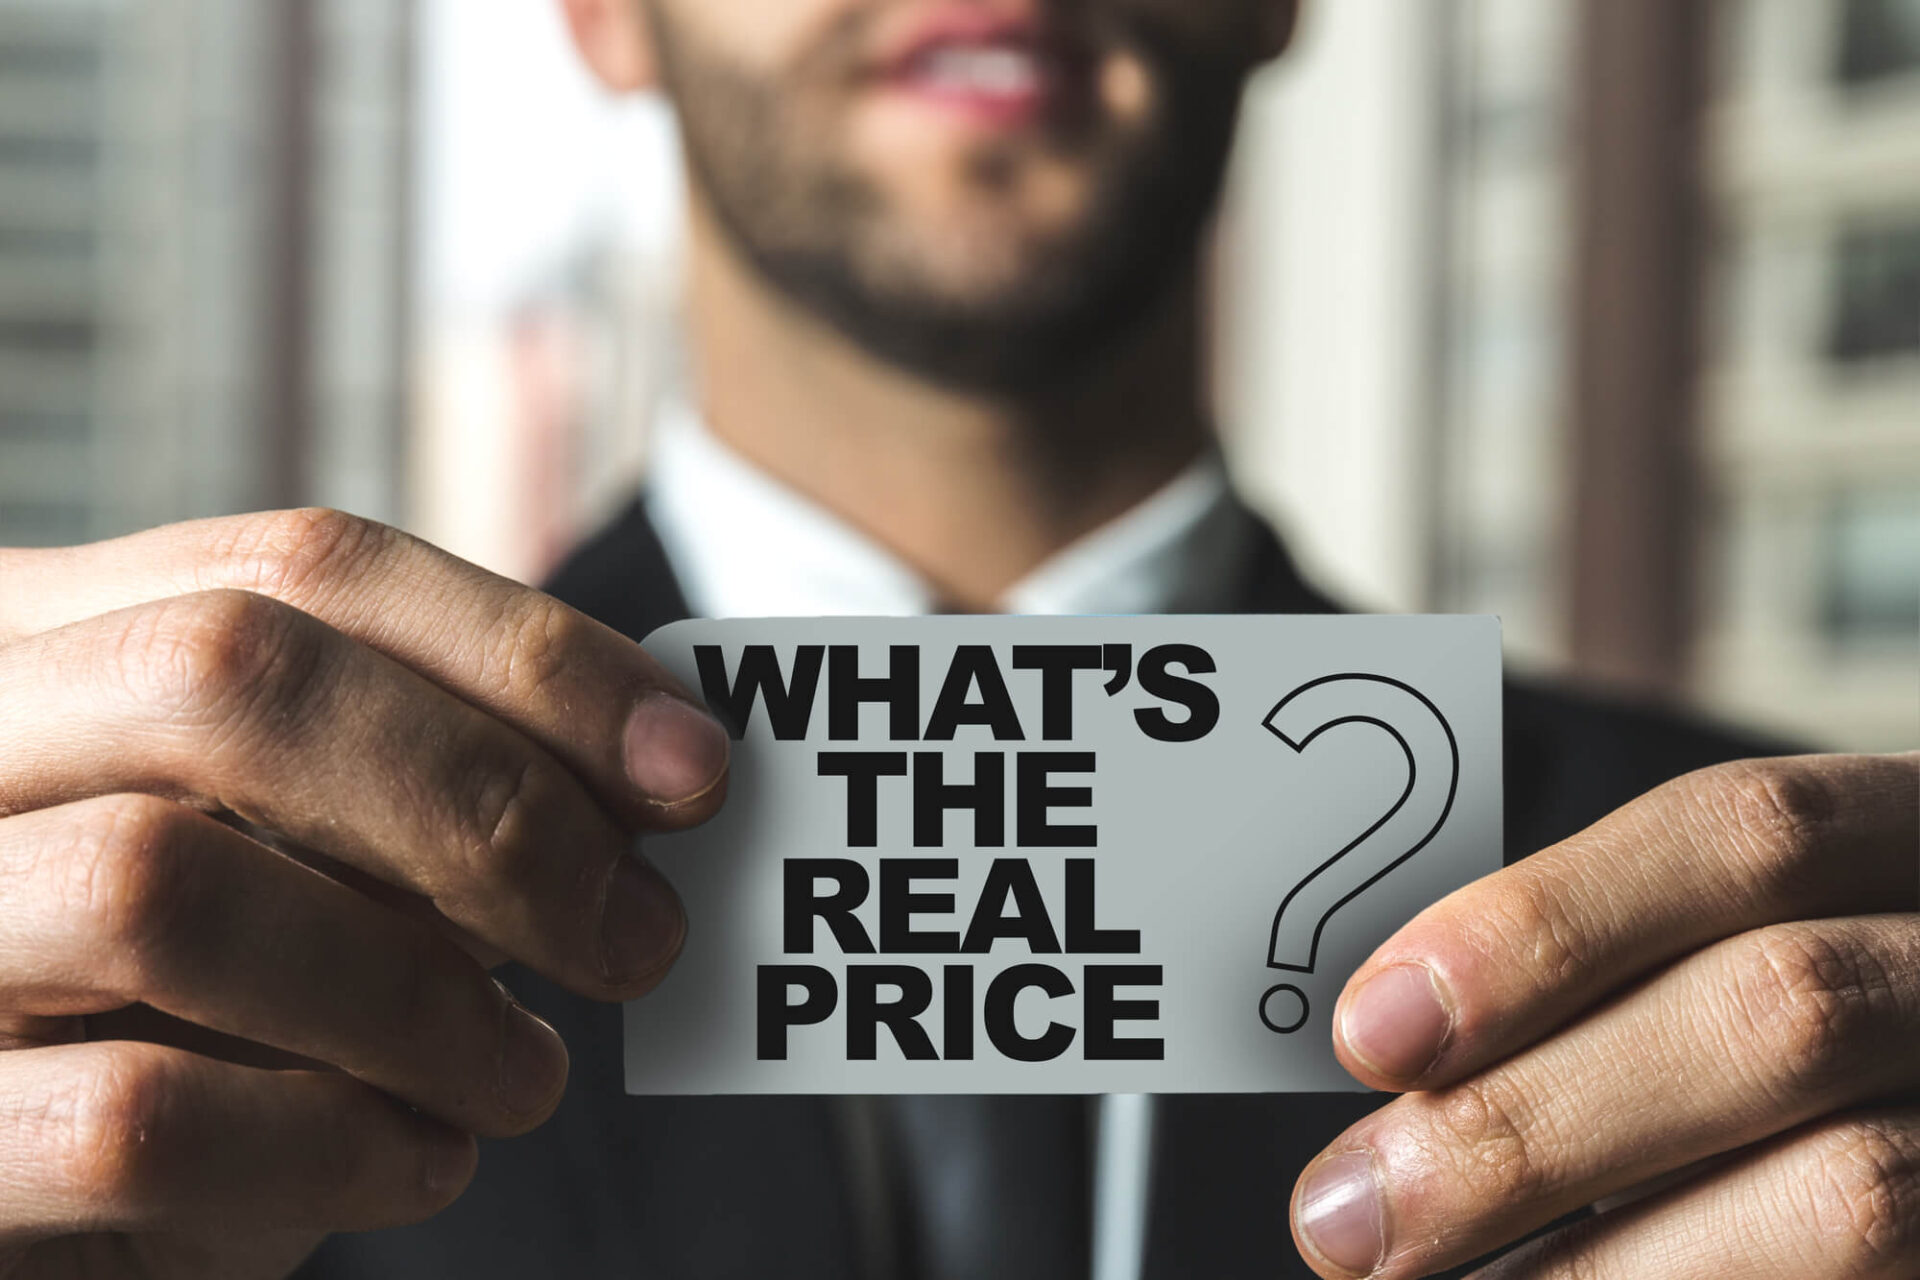 Man holding Card with question: what's the real price?